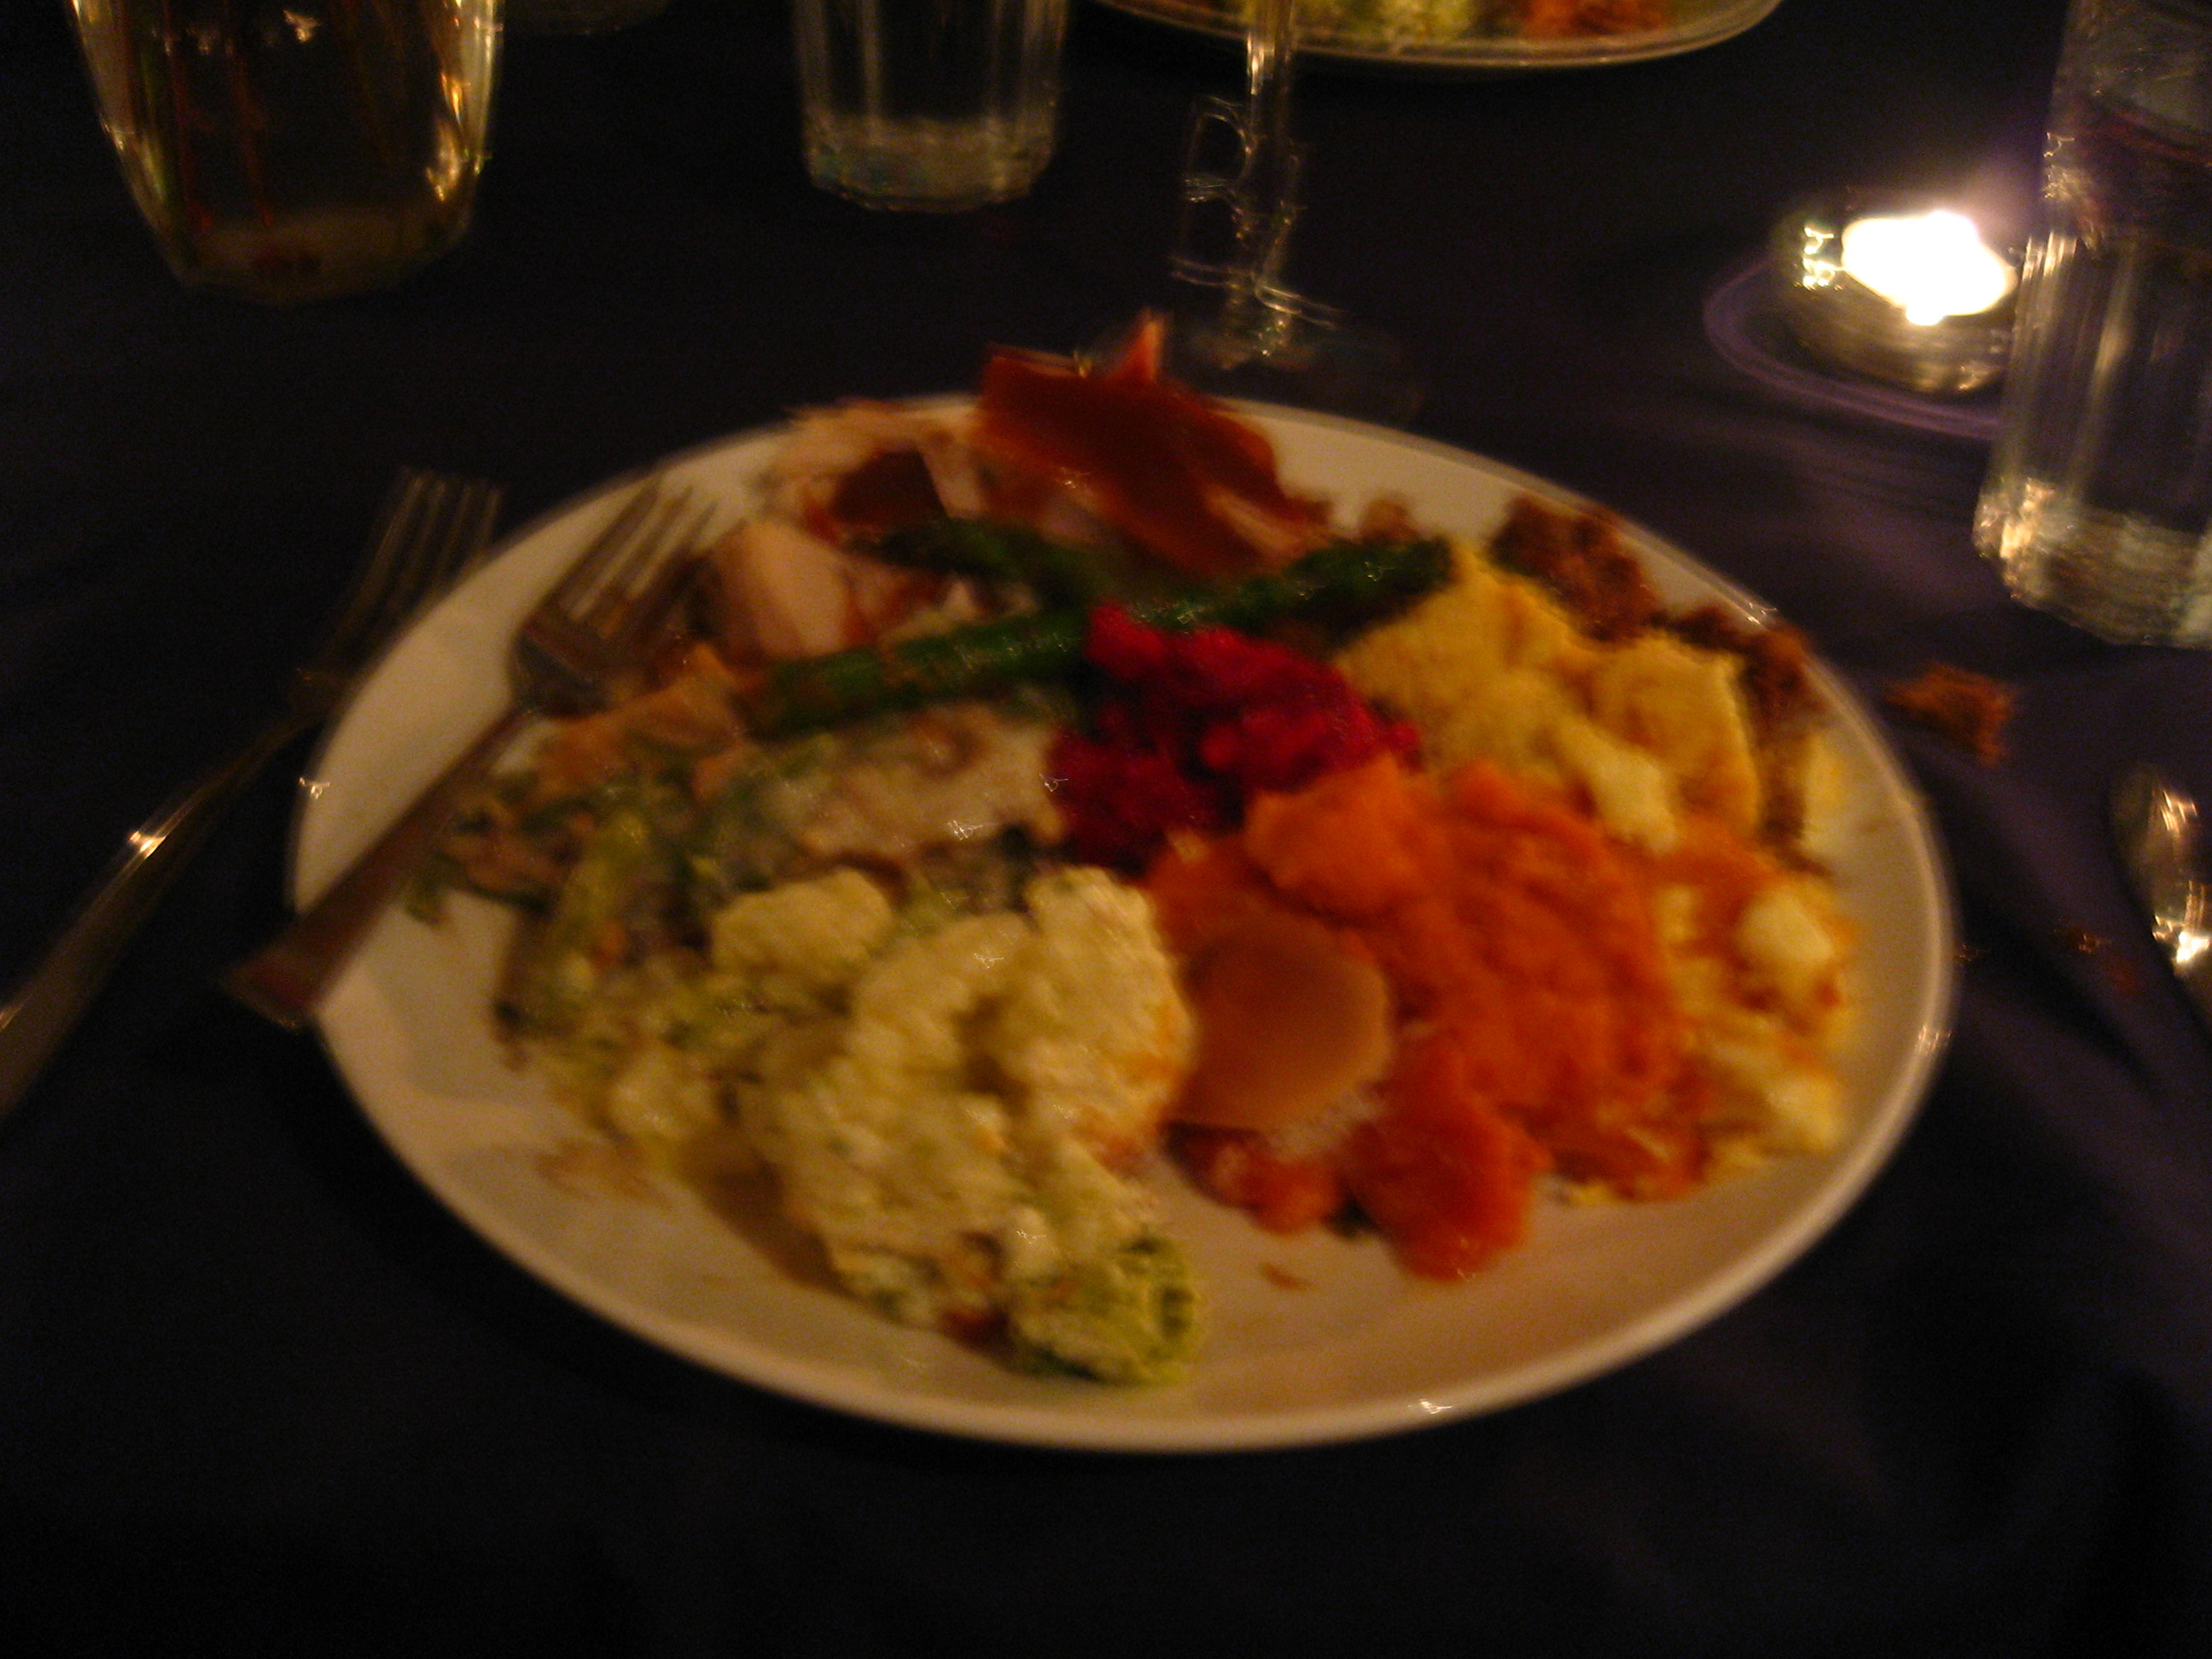 Mmmmm Thanksgiving